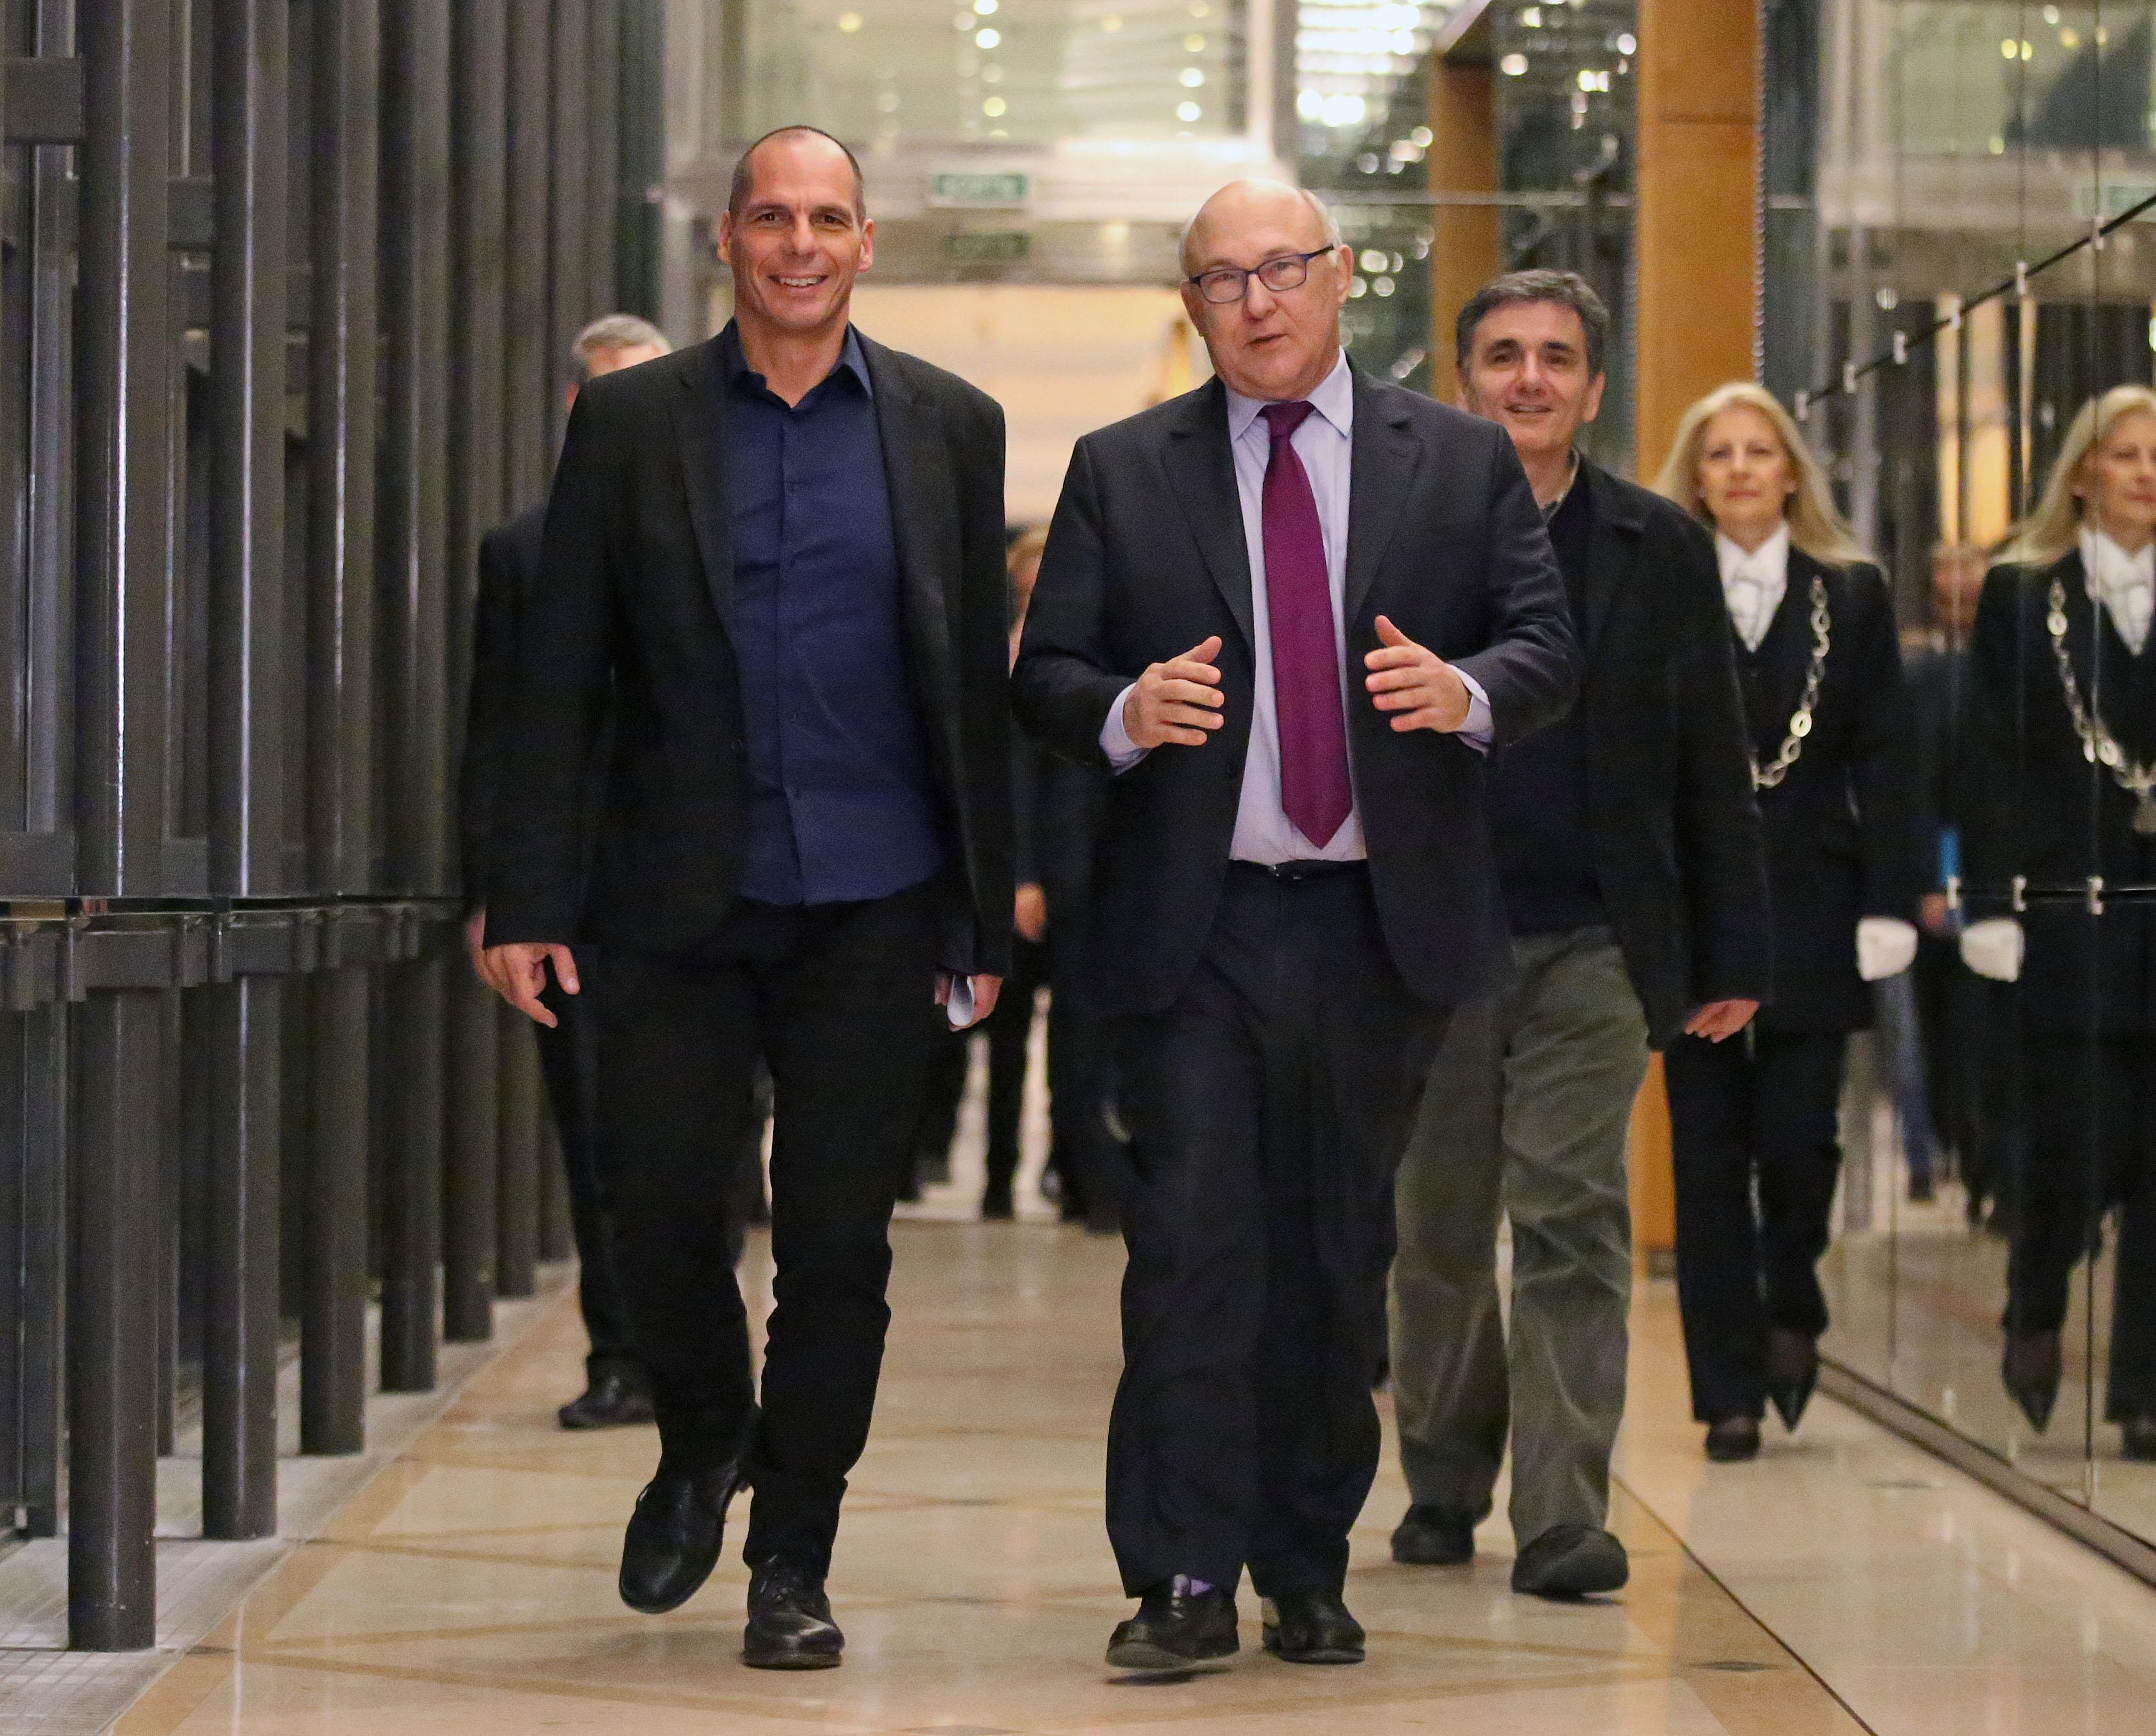 France offers support for Greece amid bailout tensions